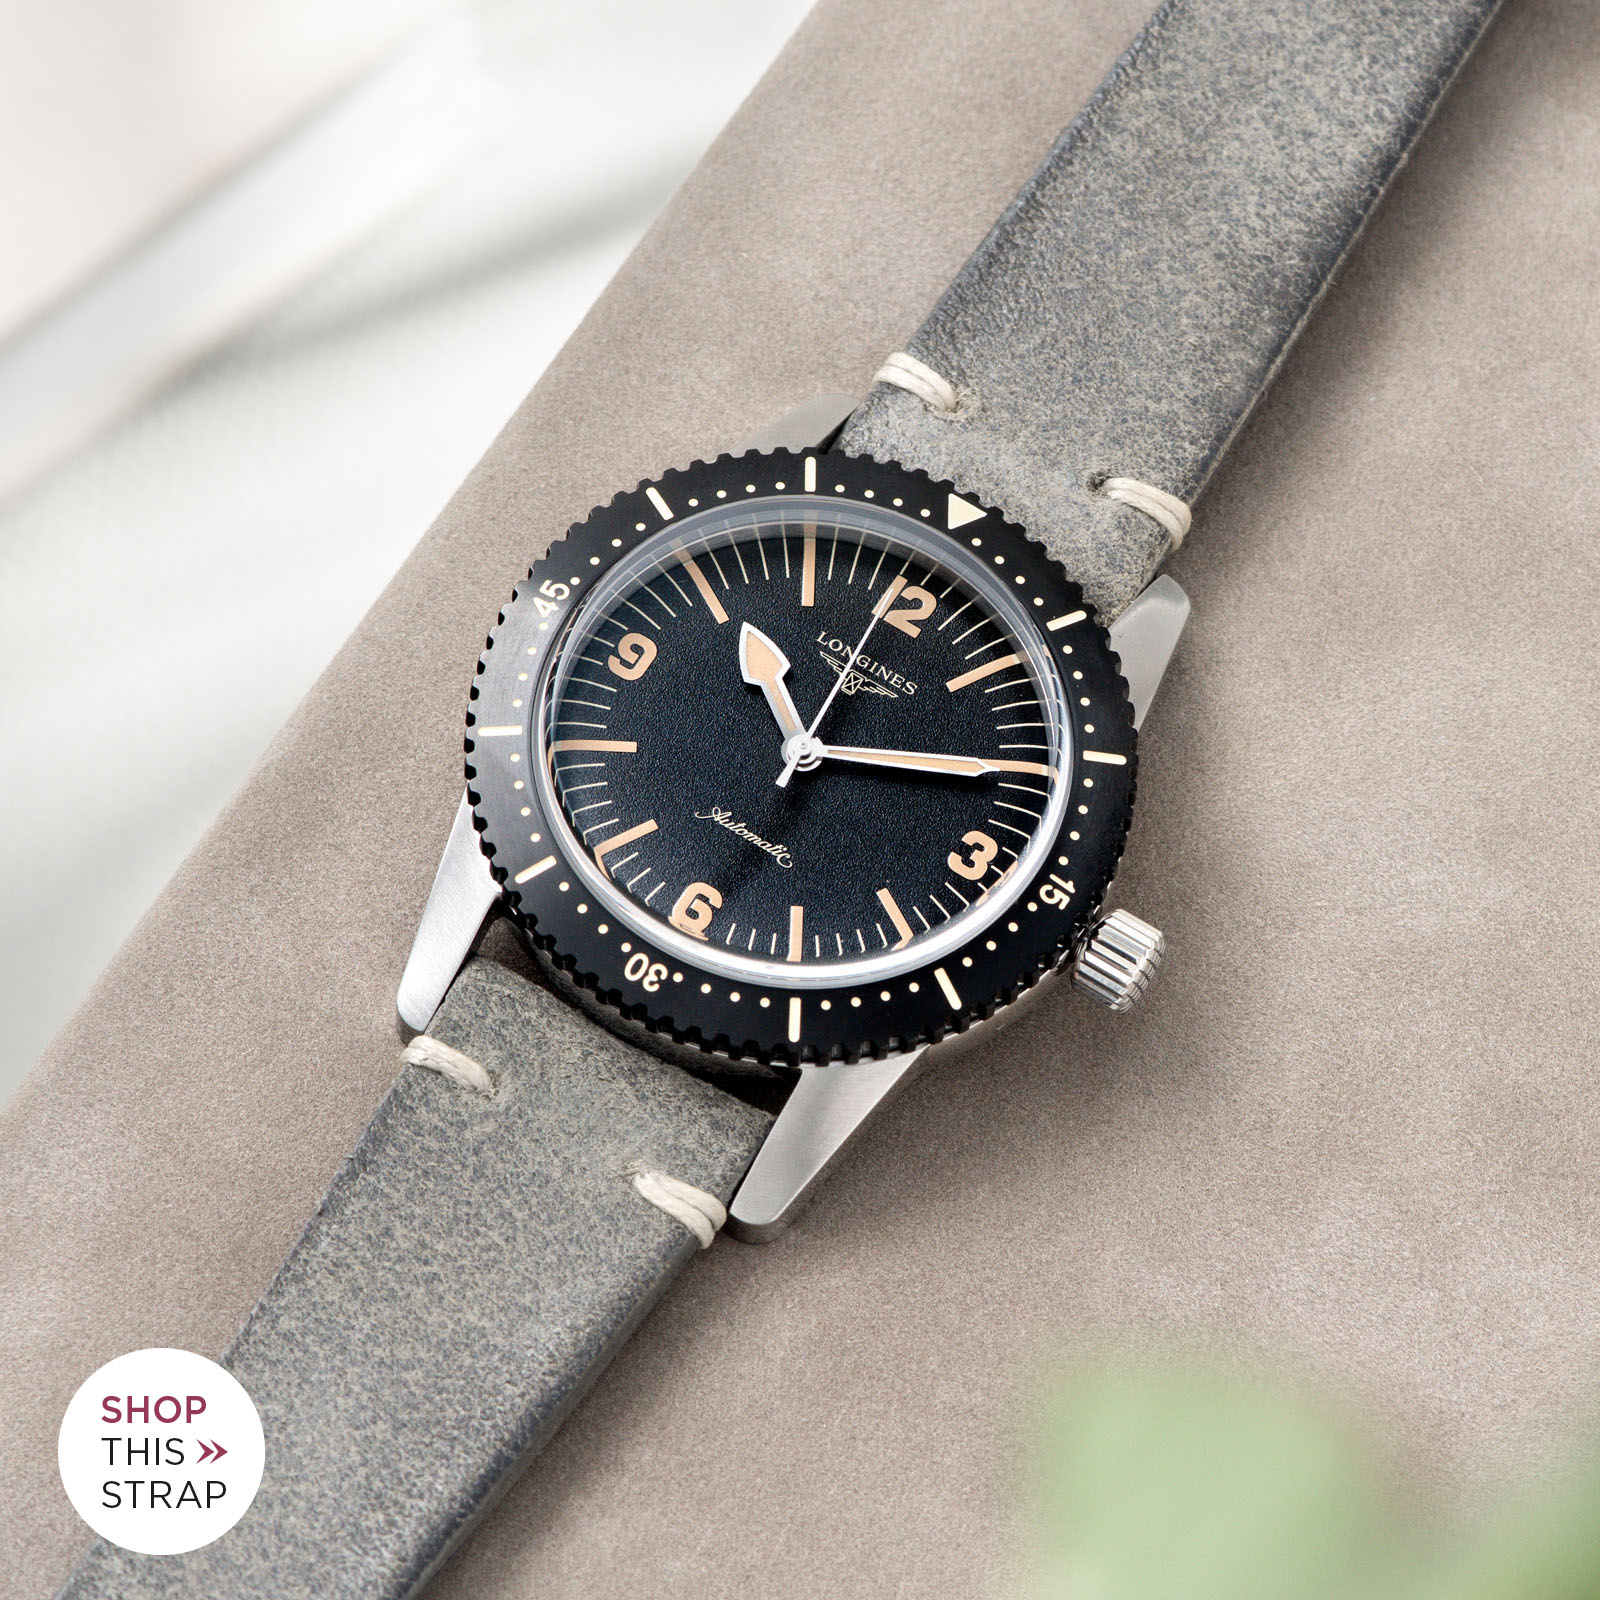 Bulang and Sons_Strap Guide_Longines Skin Diver_Rugged Grey Leather Watch Strap